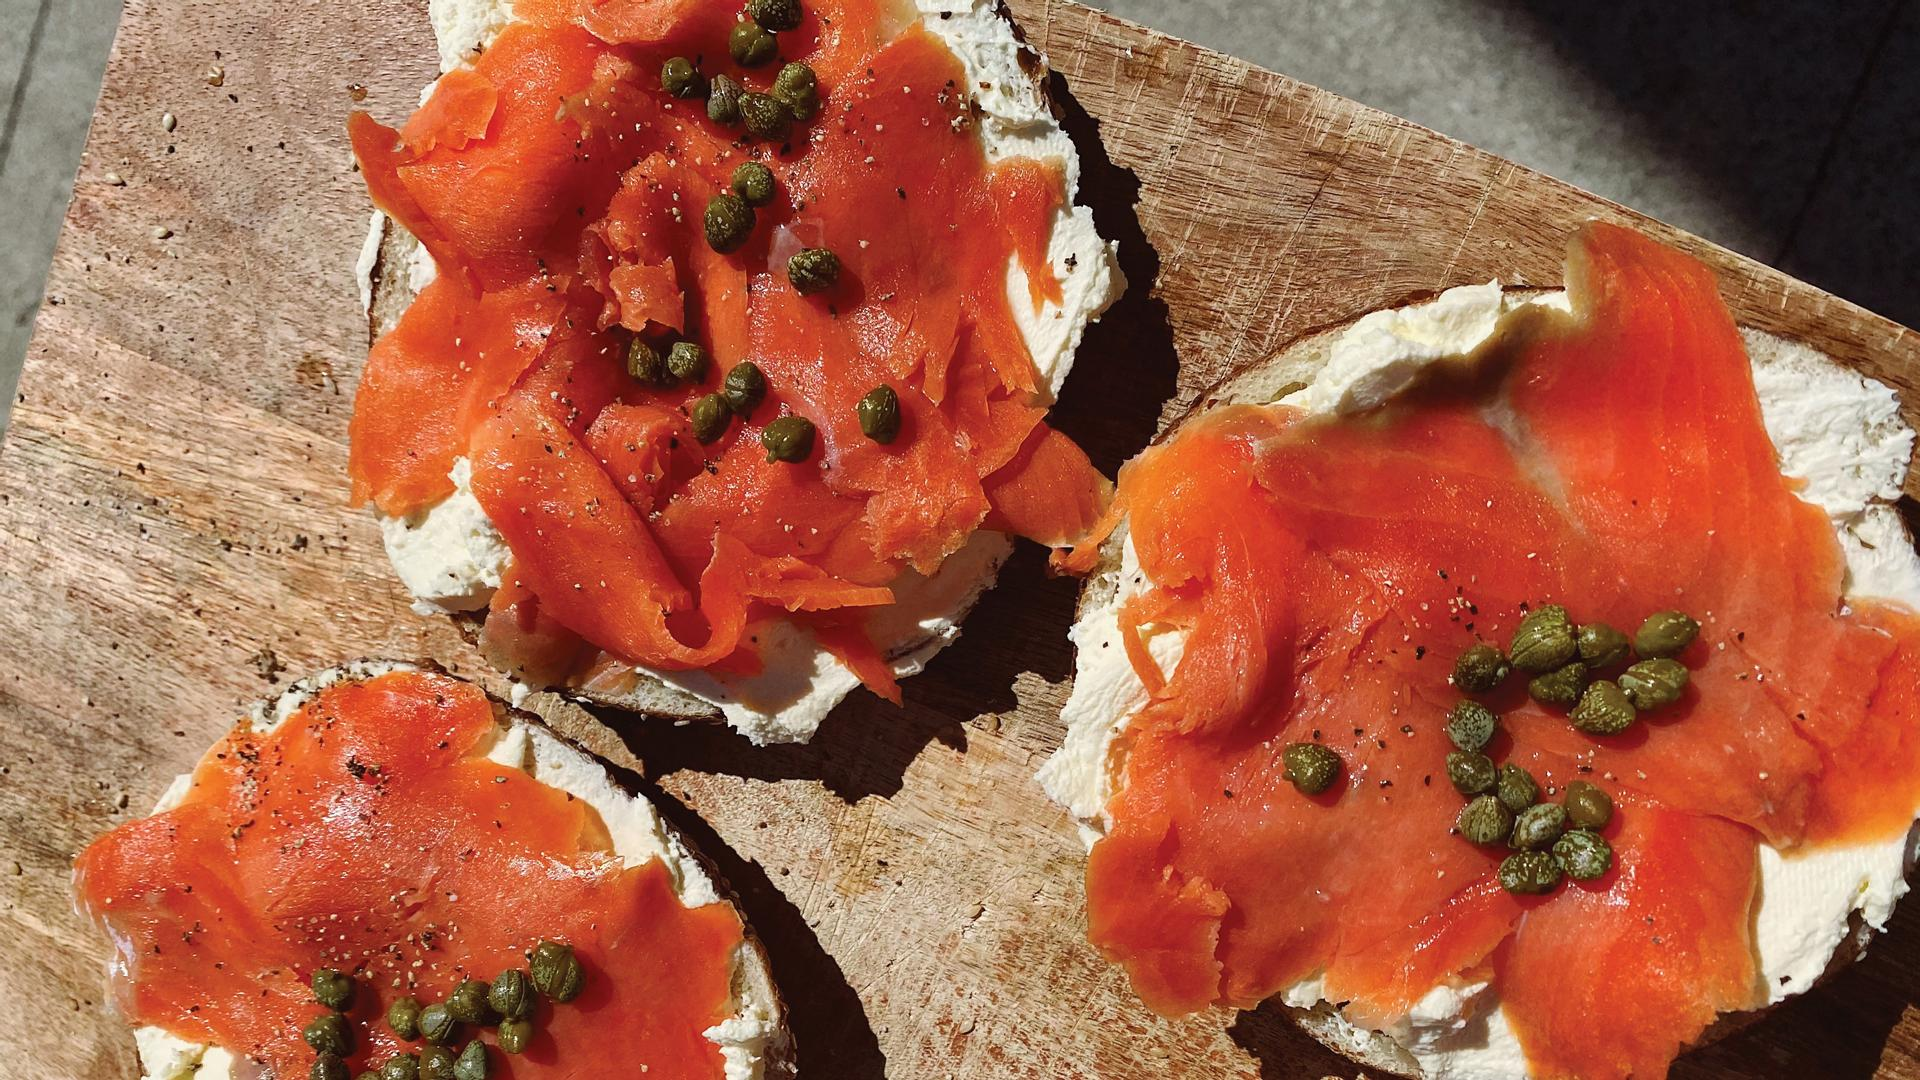 Safehouse Coffee, greengrocer, café, art shop and community hub | Salmon and lox bagels at Safehouse Coffee